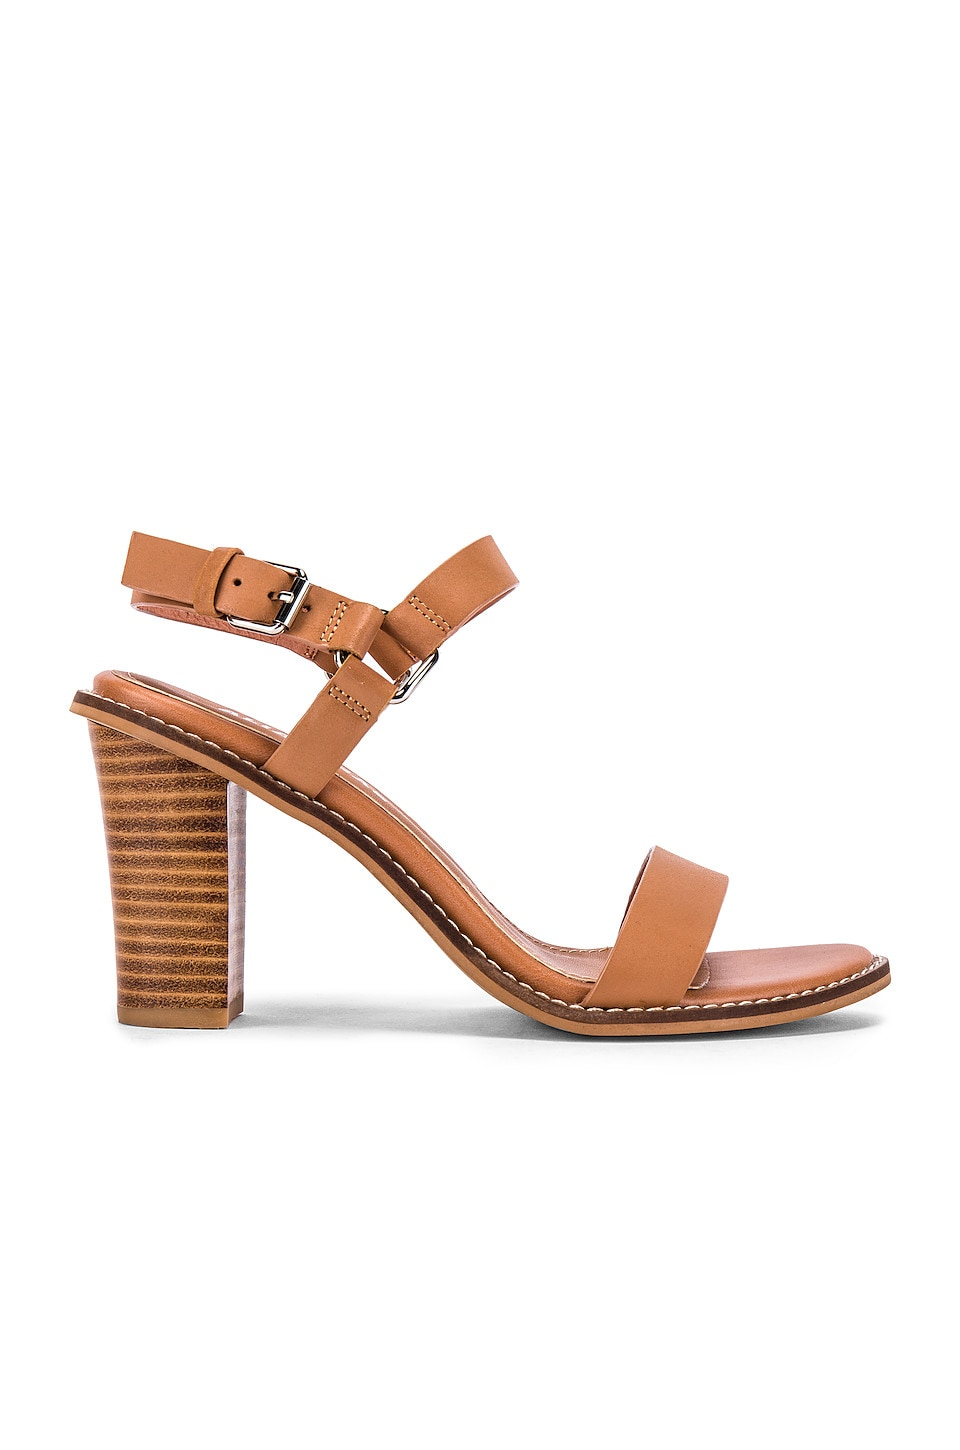 Alias Mae Eva Sandal in Light Tan